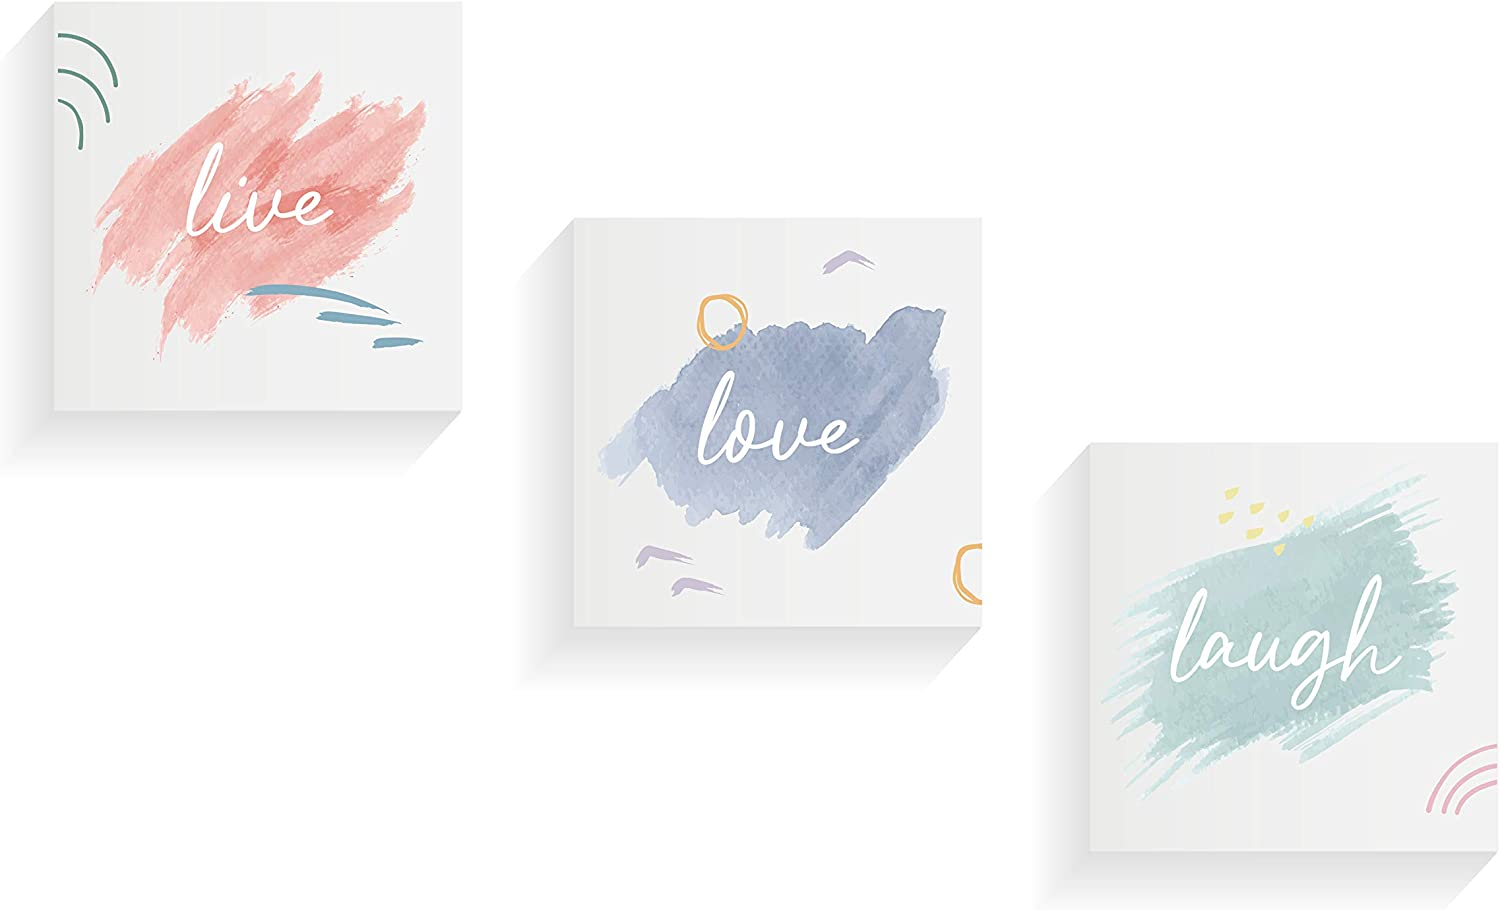 """NUSNOS Framed Wall Art   THREE Canvas Art Painting set LIVE LAUGH LOVE Wall Decor   3 X Minimalist Wall Art Pieces Printed on Stretched Canvas Prints on Wooden Frames Suitable As Nursery Wall Decor   LIVE LOVE LAUGH Modern Wall Art Set Each Frame Sized 8.26"""" X 8.26""""   Quotes Wall Decor & Inspirational Wall Art With Pastel Colors Suits As Bedroom Set, As Kitchen & Bathroom Wall Decor, Motivational Wall Art & White Aesthetic Room Decor Set as Teen Wall Decor"""